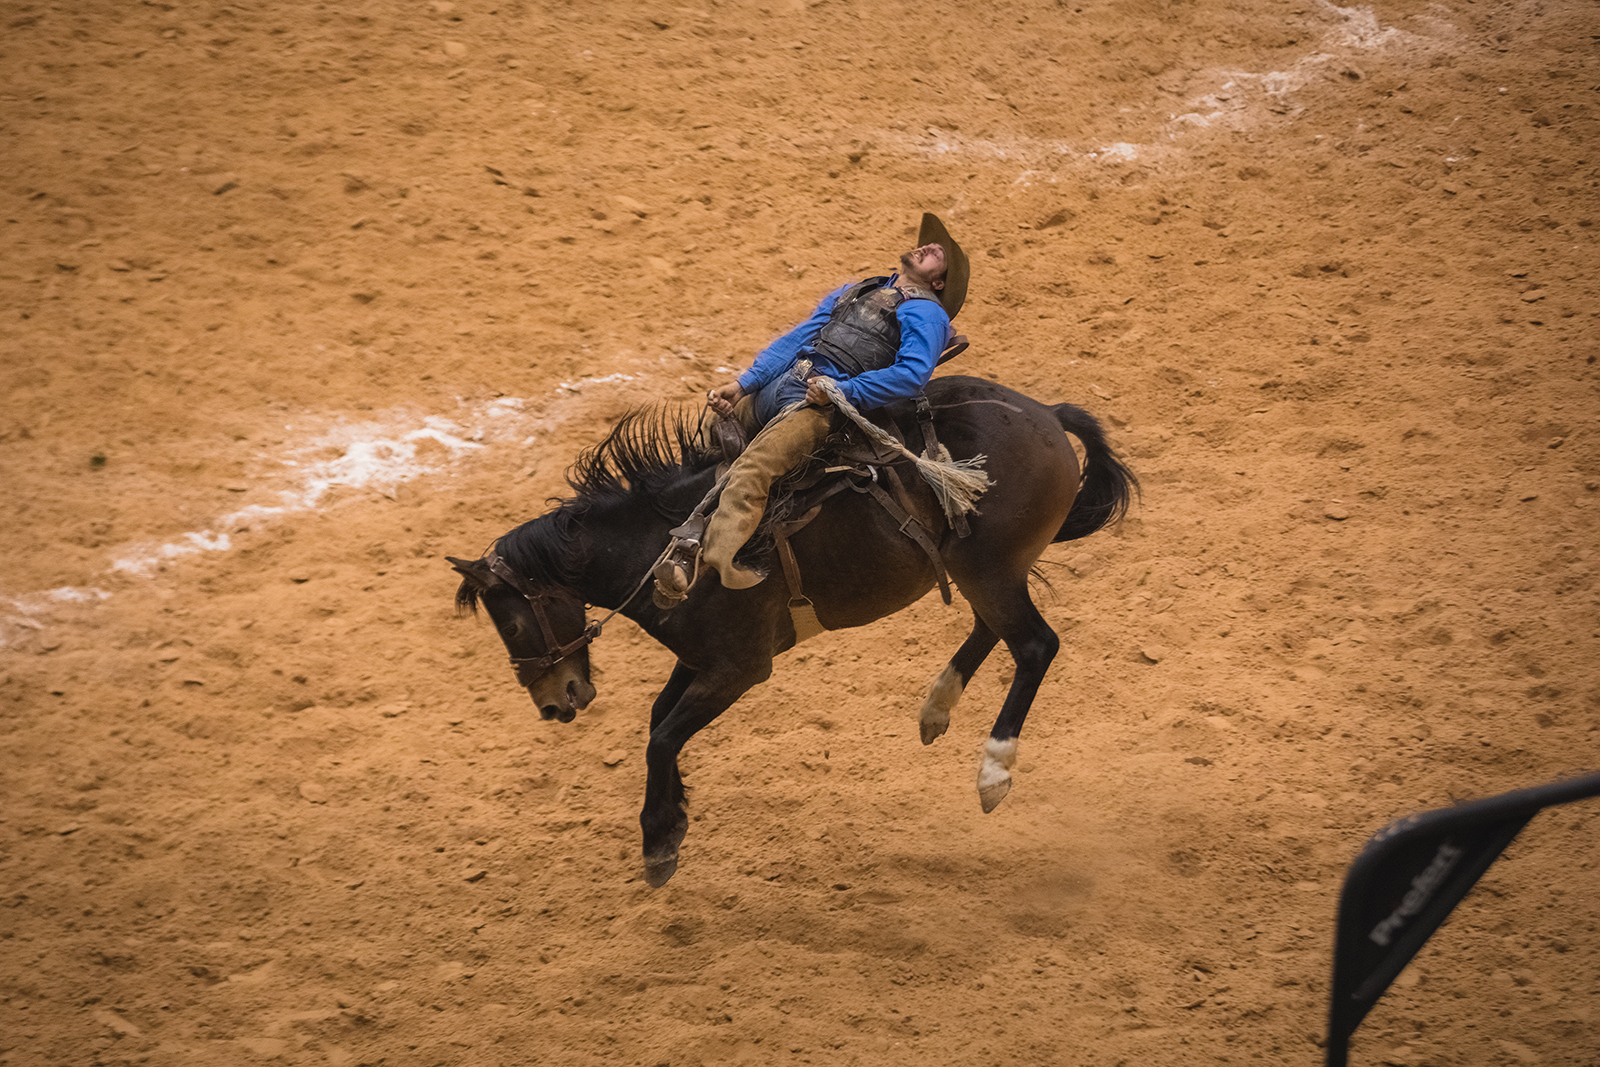 world championship ranch rodeo amarillo texas November 2017